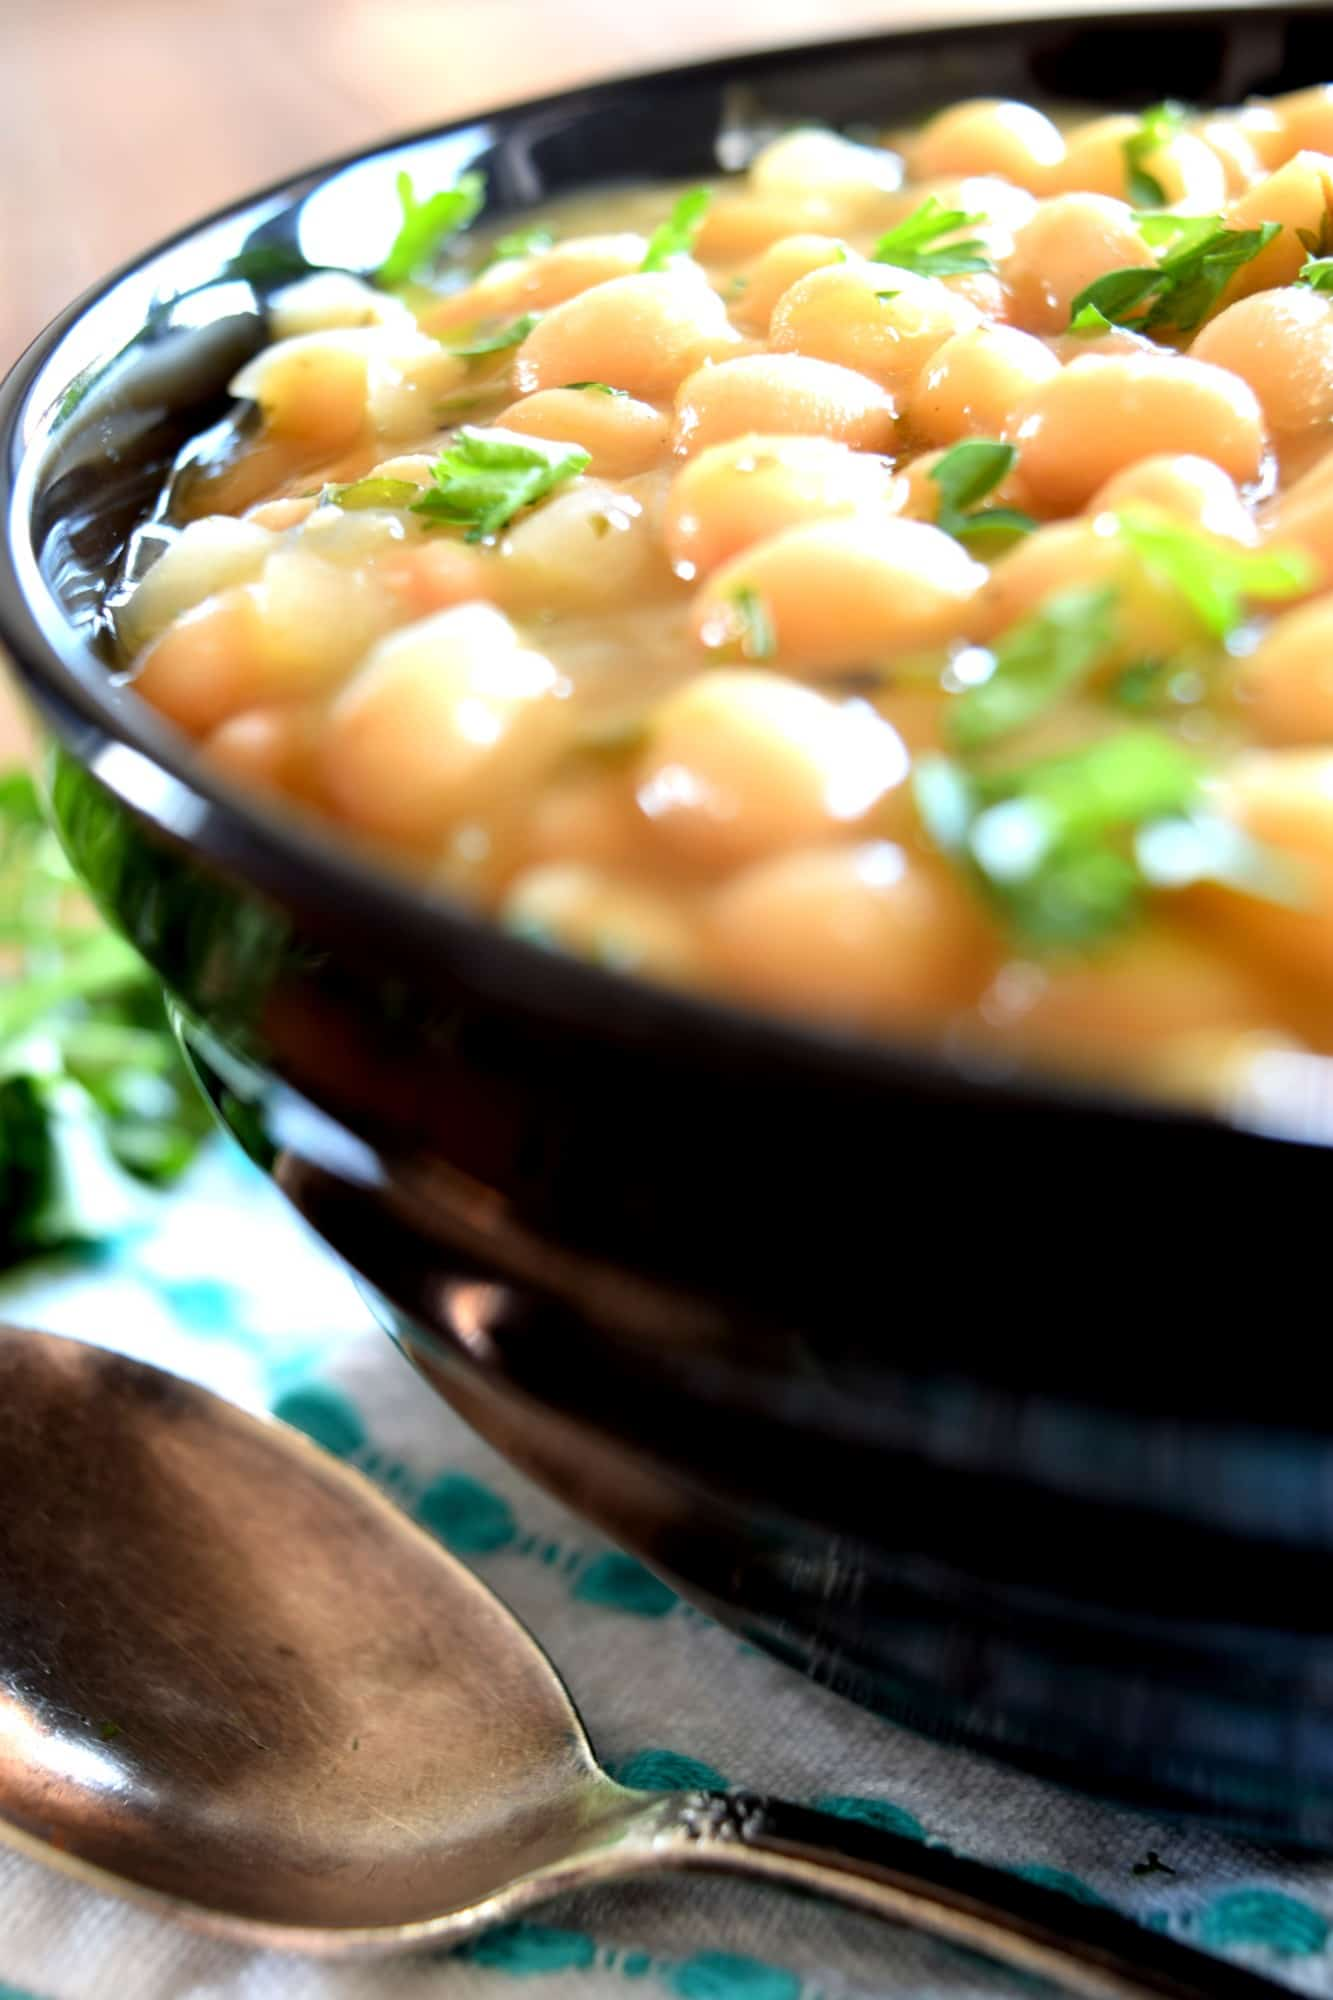 Braised White Bean Stew